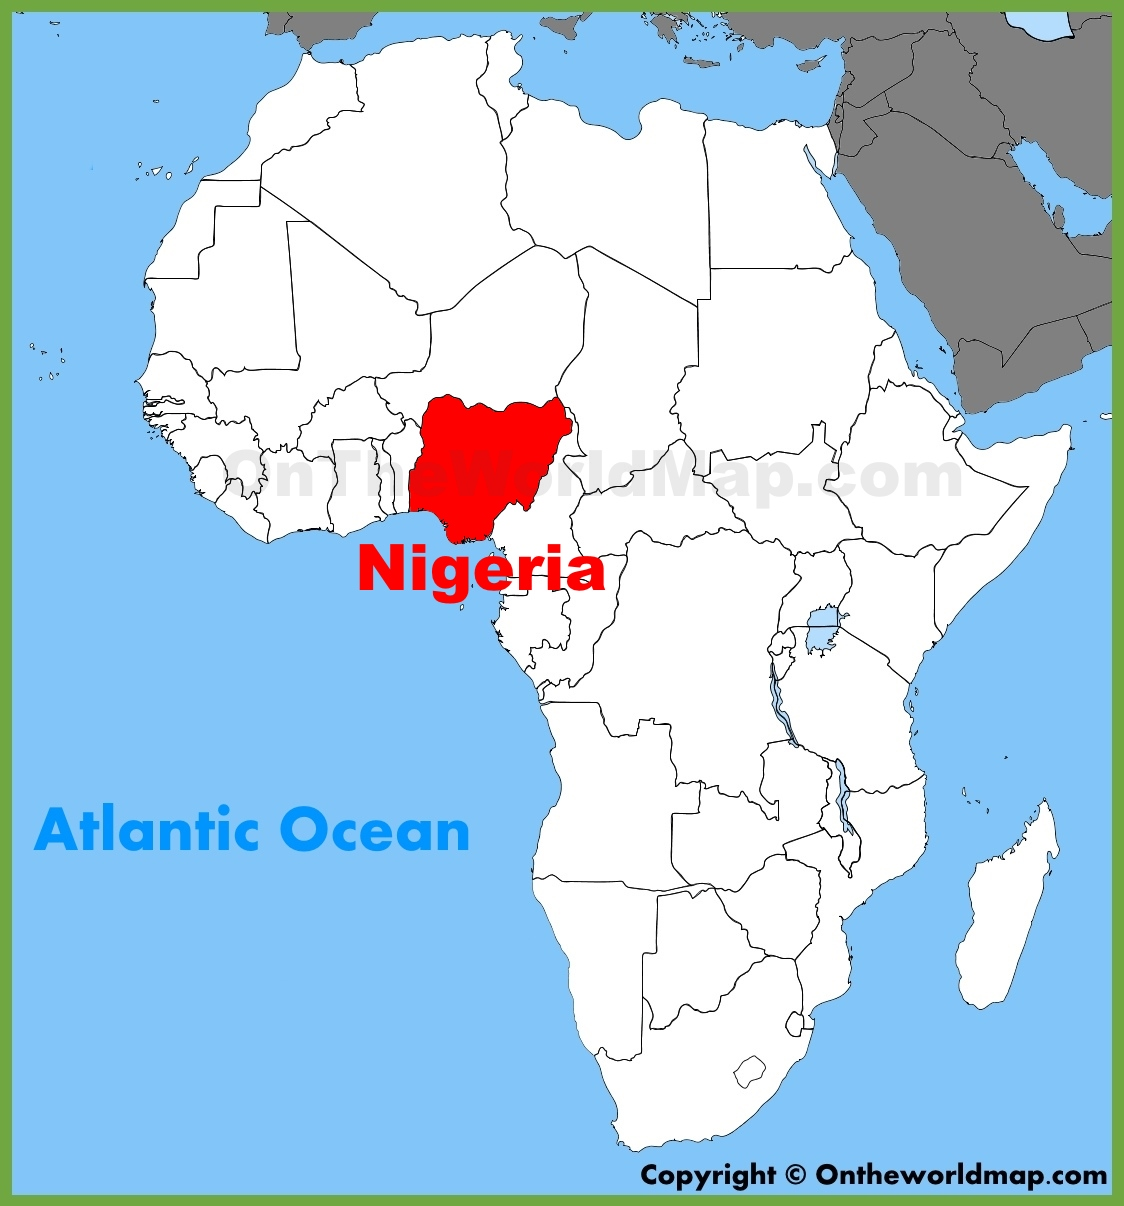 Map Of Nigeria Africa Nigeria location on the Africa map